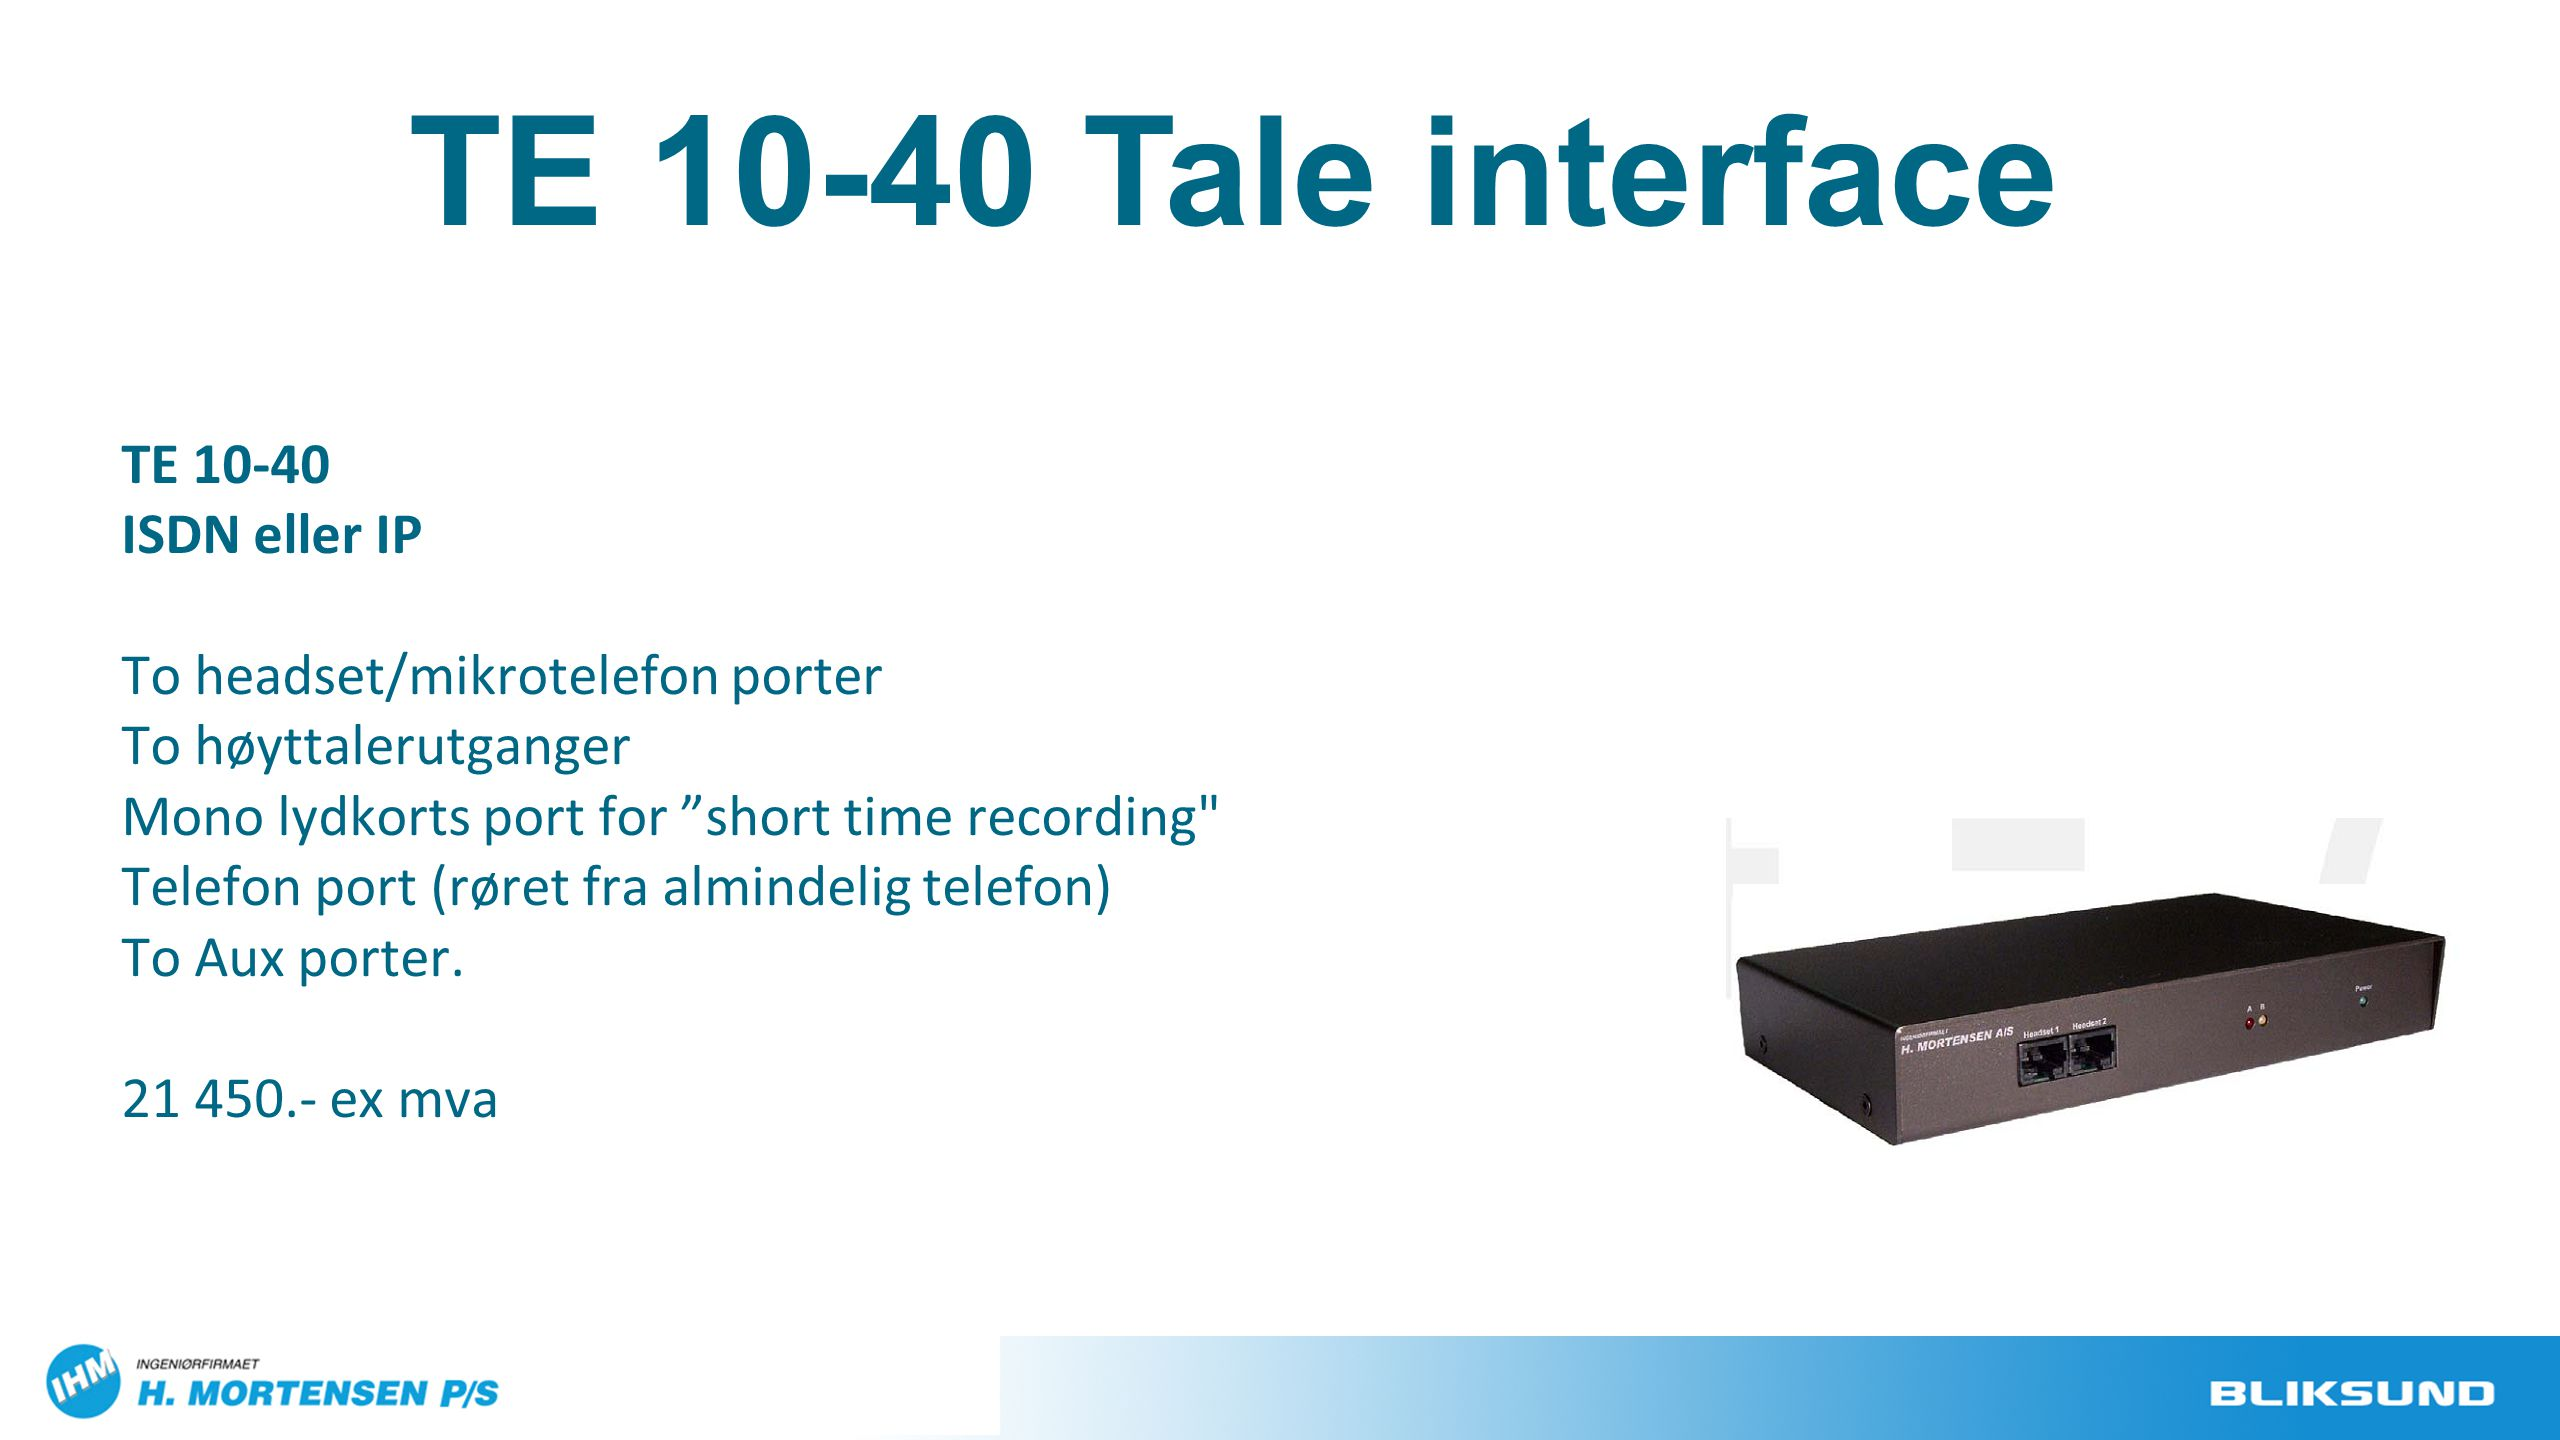 TE 10-40 Tale interface